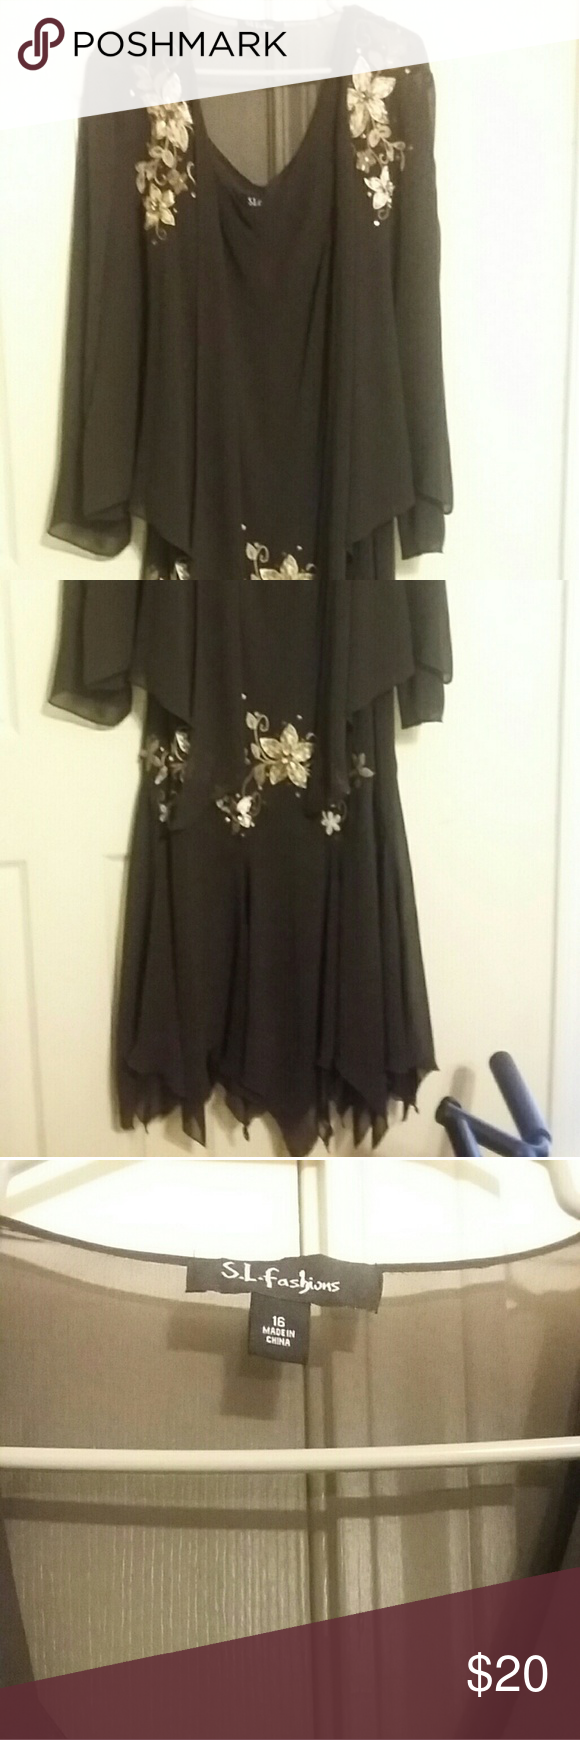 Dress beautiful brown dress piece will take best offer dresses